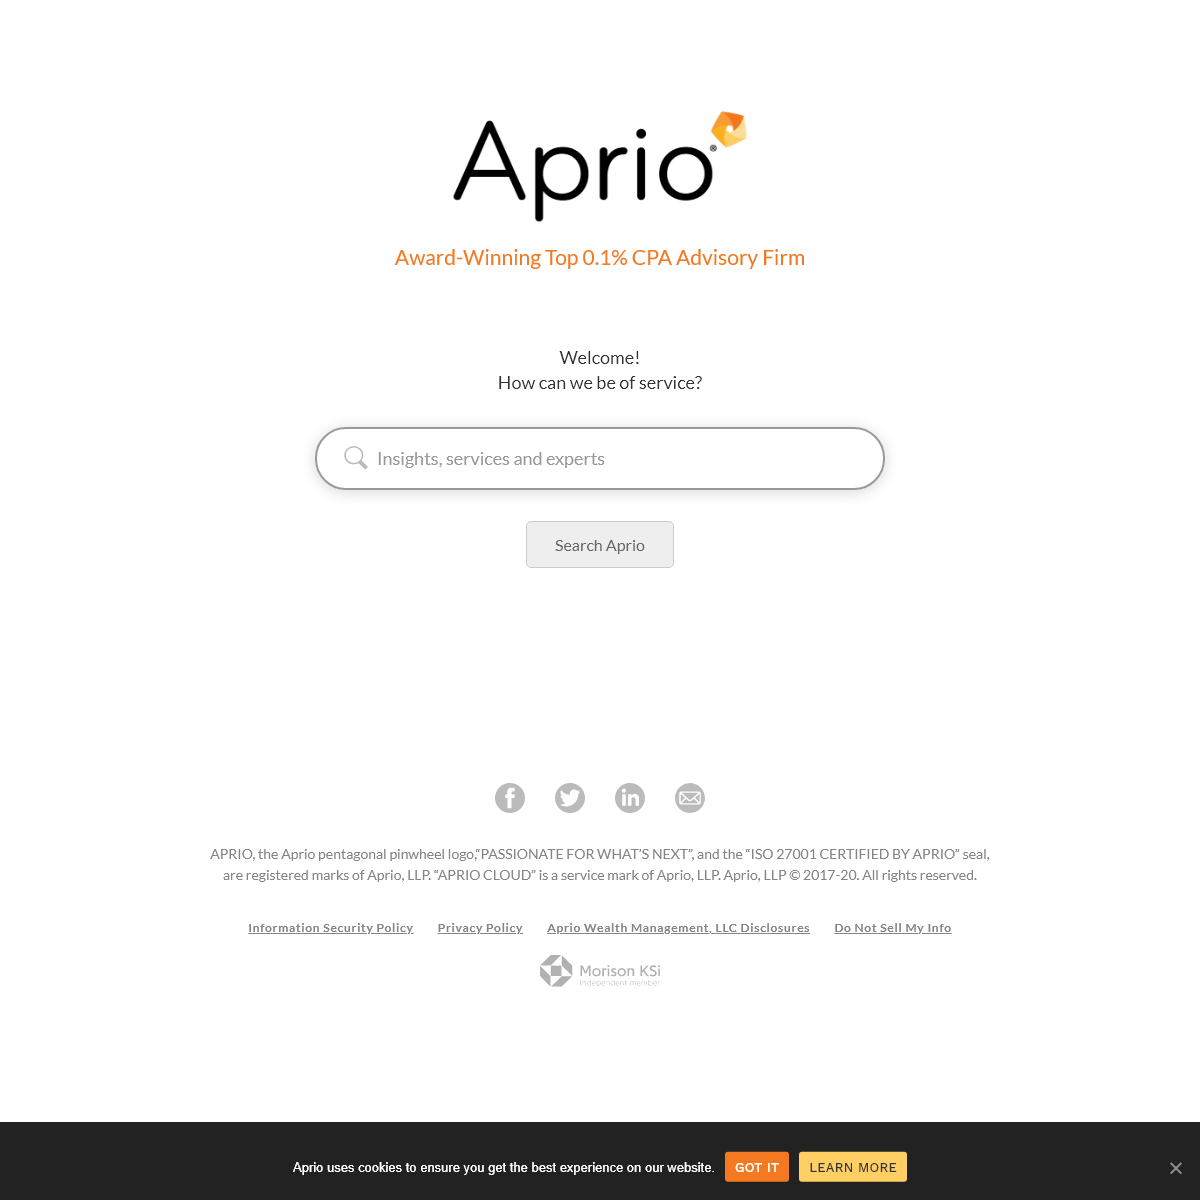 Award-Winning CPA-led Business Advisory Firm - Aprio - Passionate For What's Next®